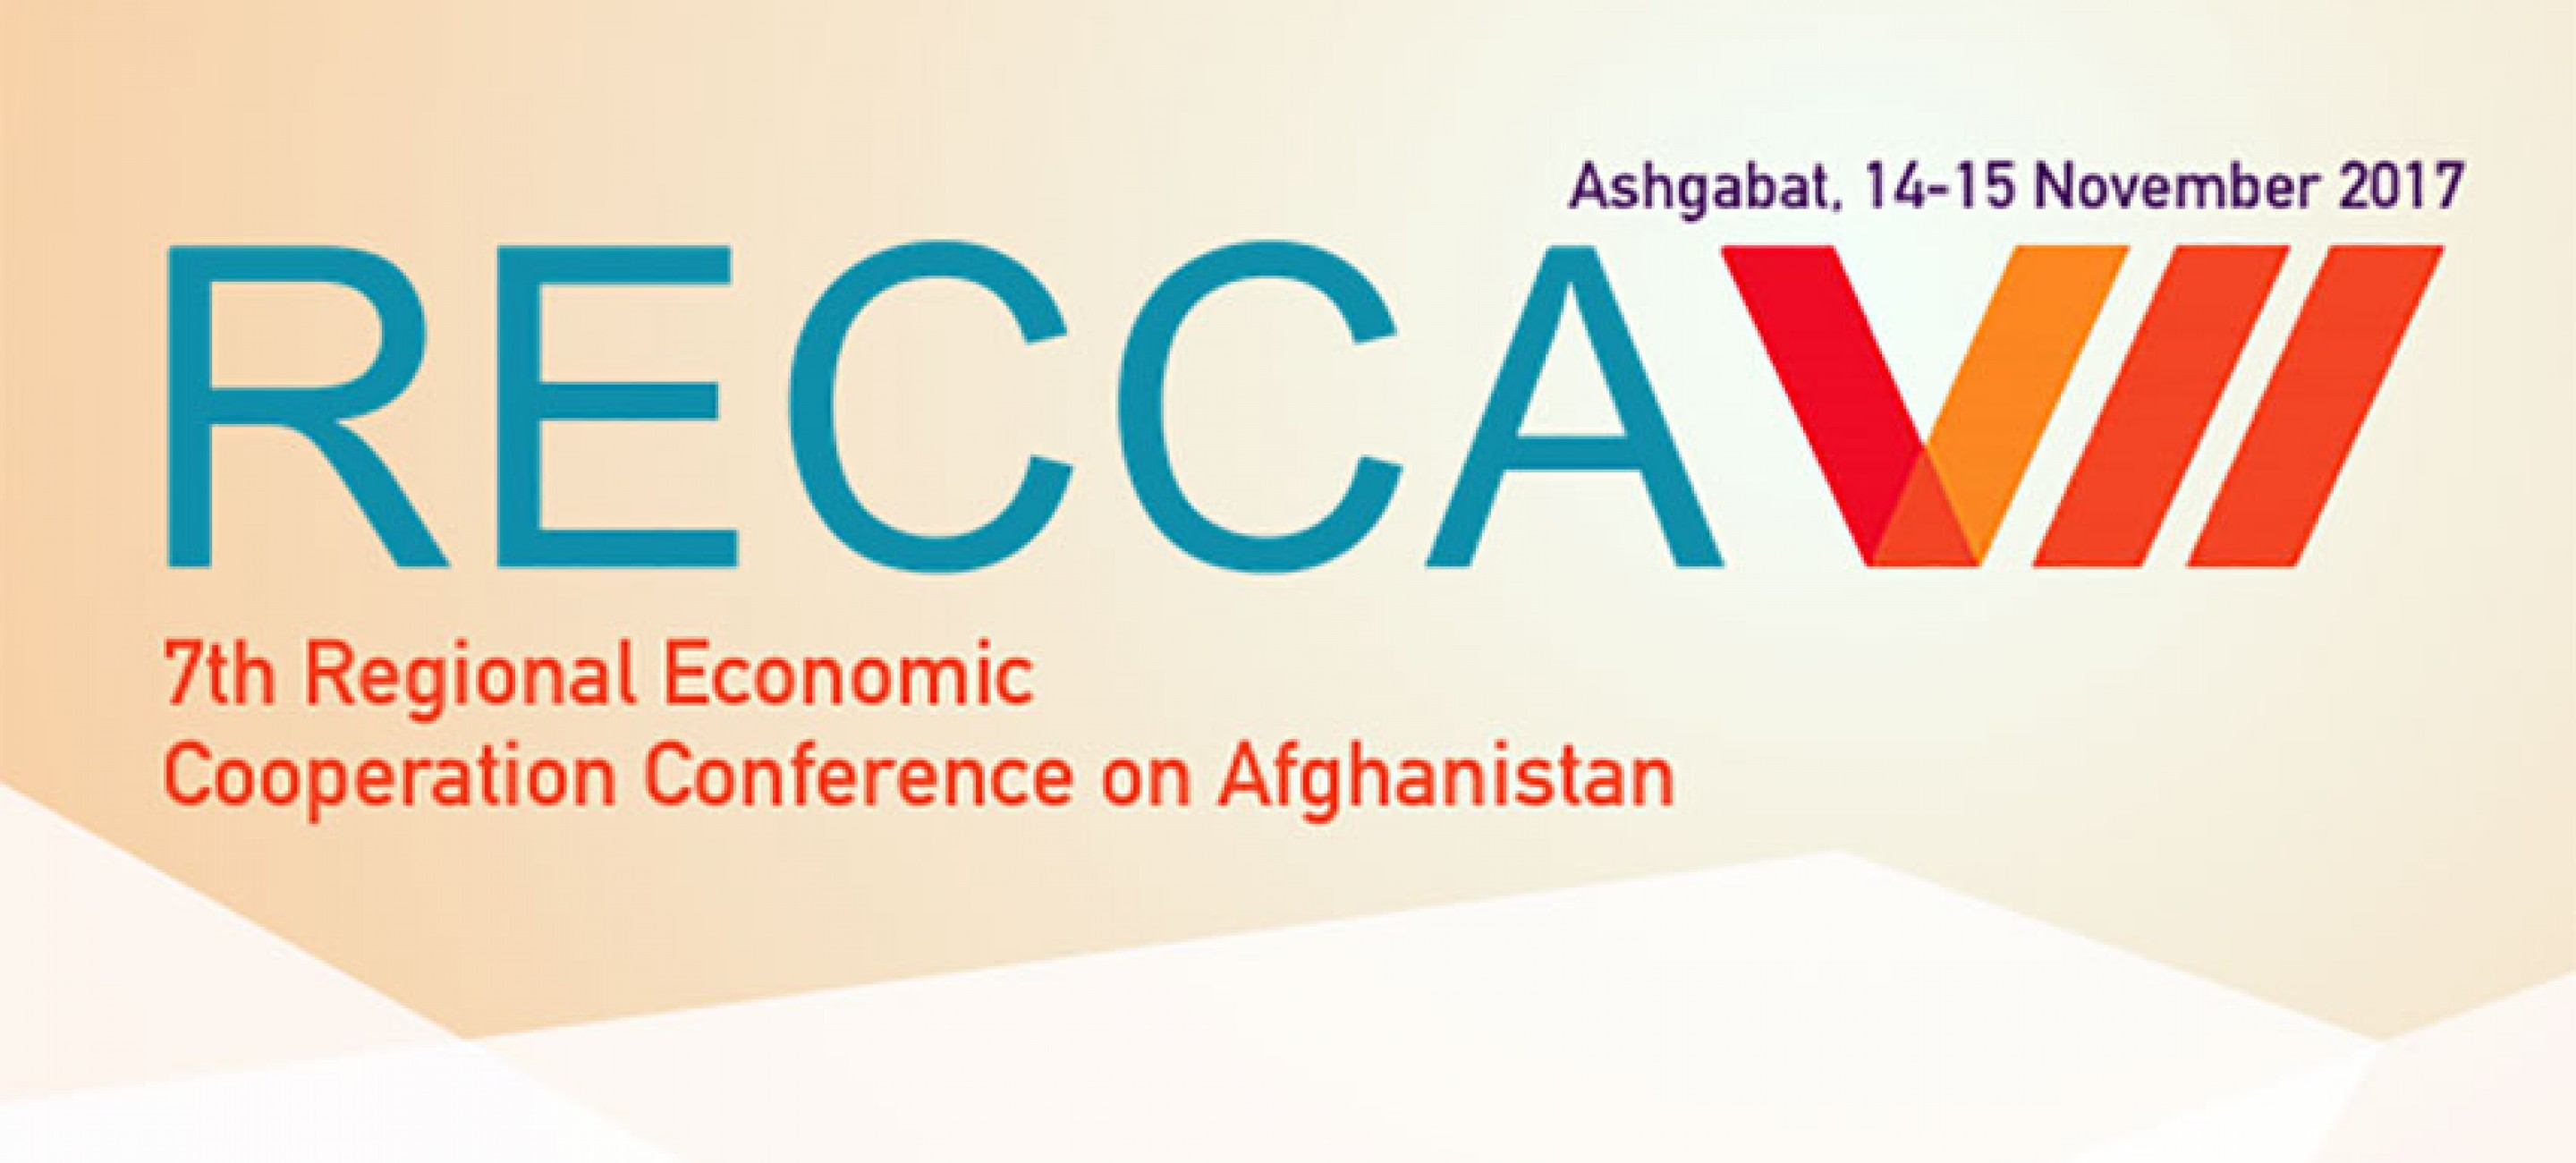 Ashgabat is to host the Regional Economic Cooperation Conference on Afghanistan on November 14-15